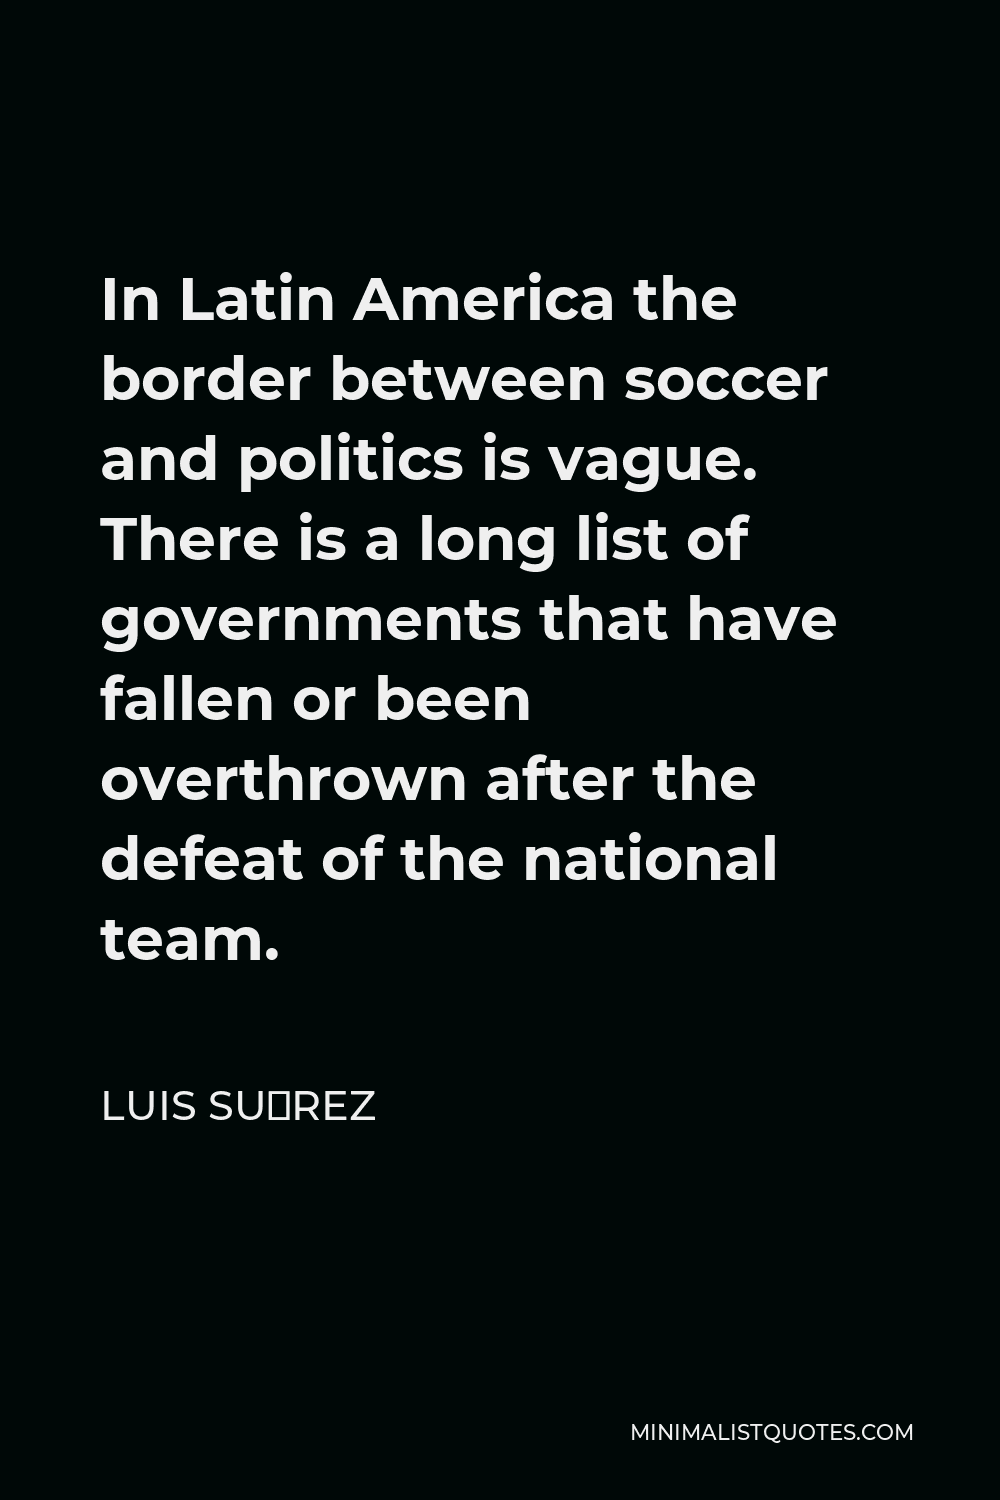 Luis Suárez Quote - In Latin America the border between soccer and politics is vague. There is a long list of governments that have fallen or been overthrown after the defeat of the national team.